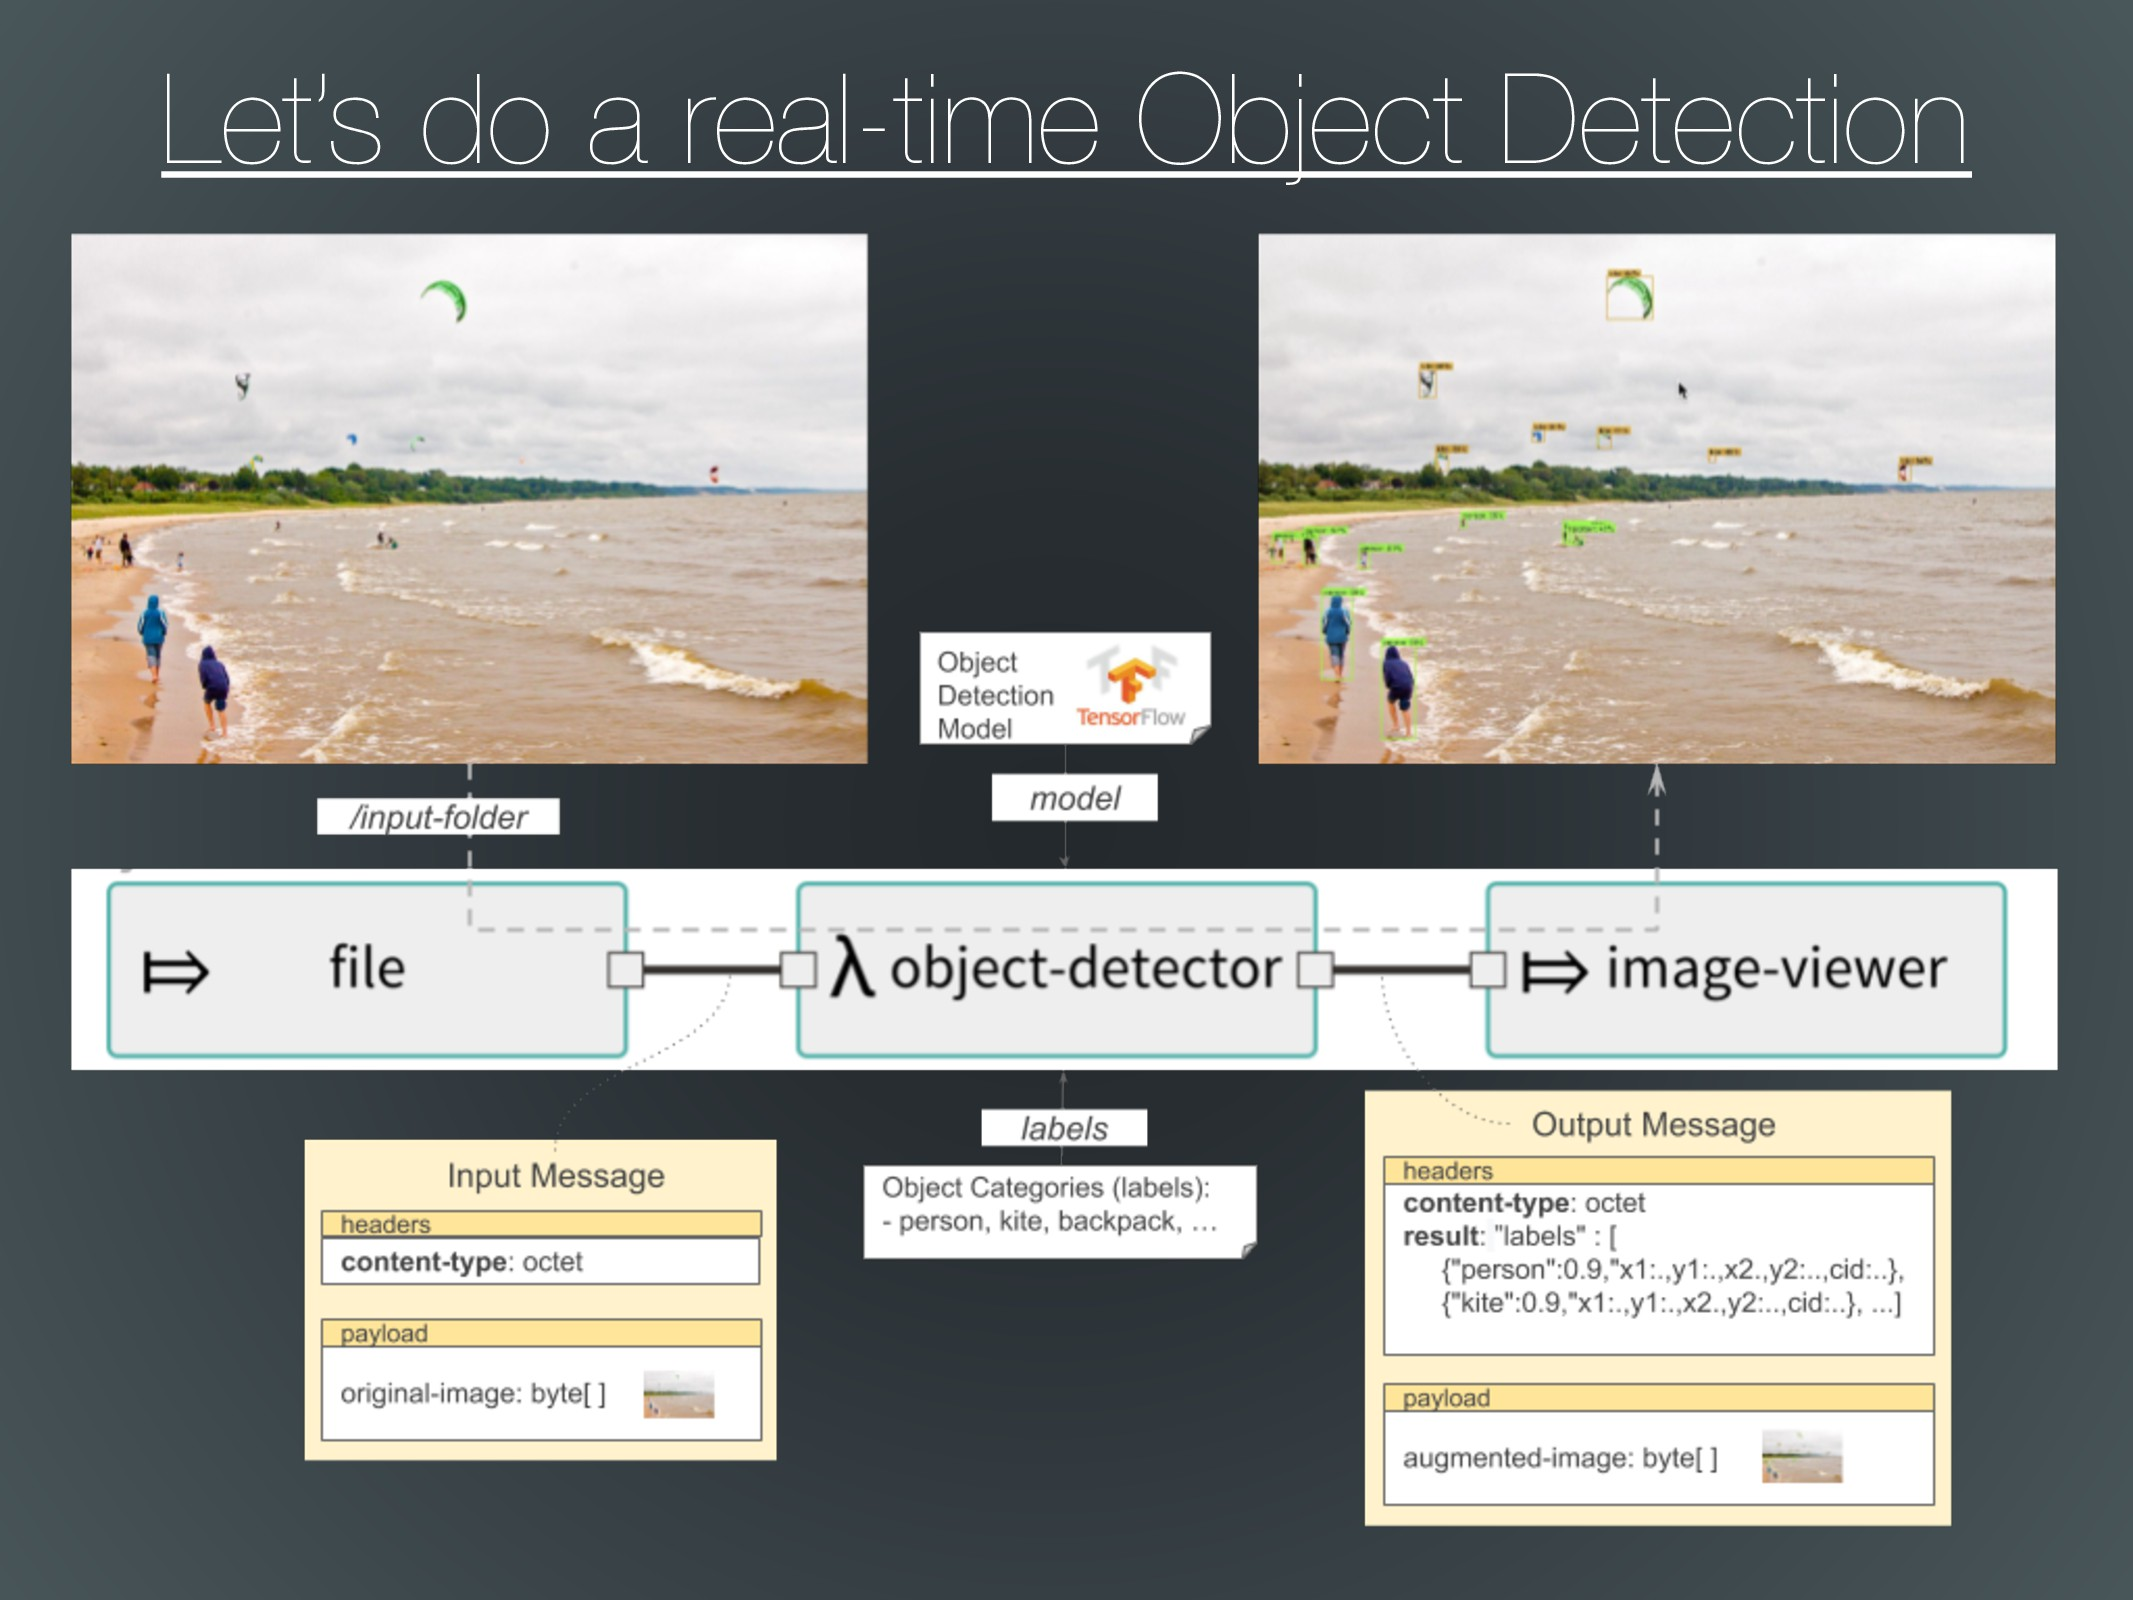 Let's do a real-time Object Detection